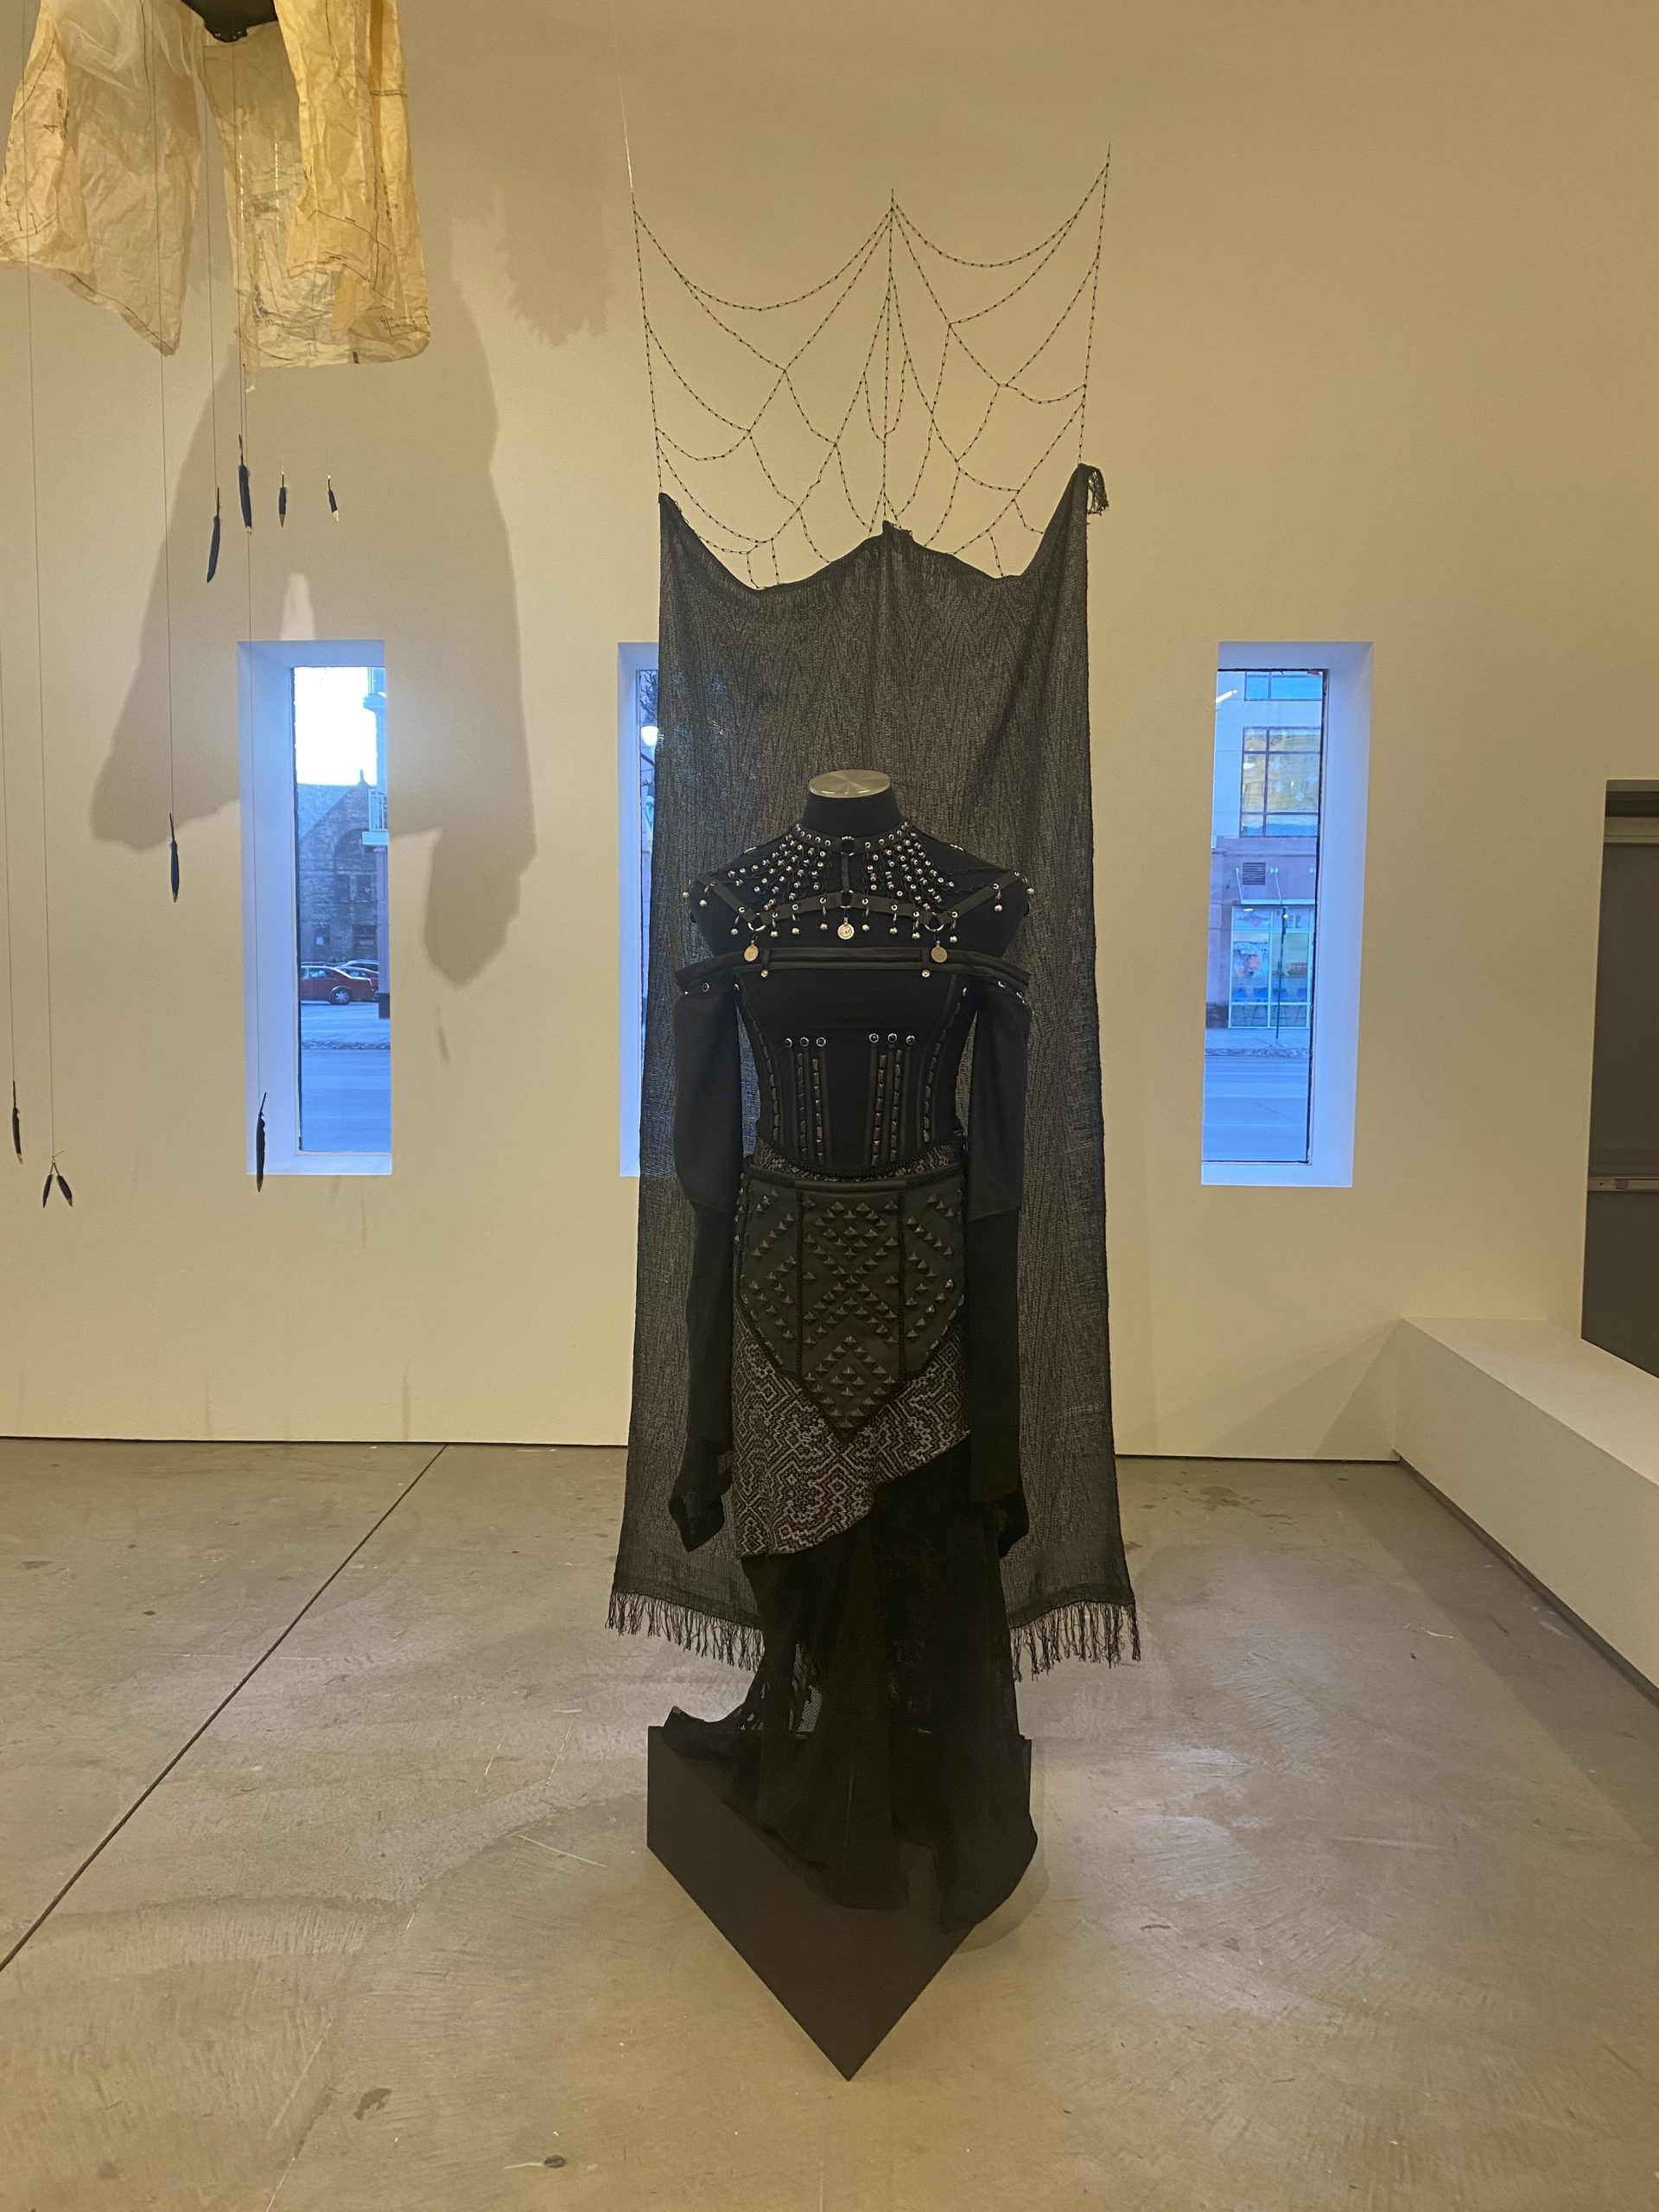 Vanagad, 2021, Handwoven silk, beads, studs, leather, mesh, chain, coins, found corset safety pins (web), 10 x 2 ft. Museum of Contemporary Art Detroit